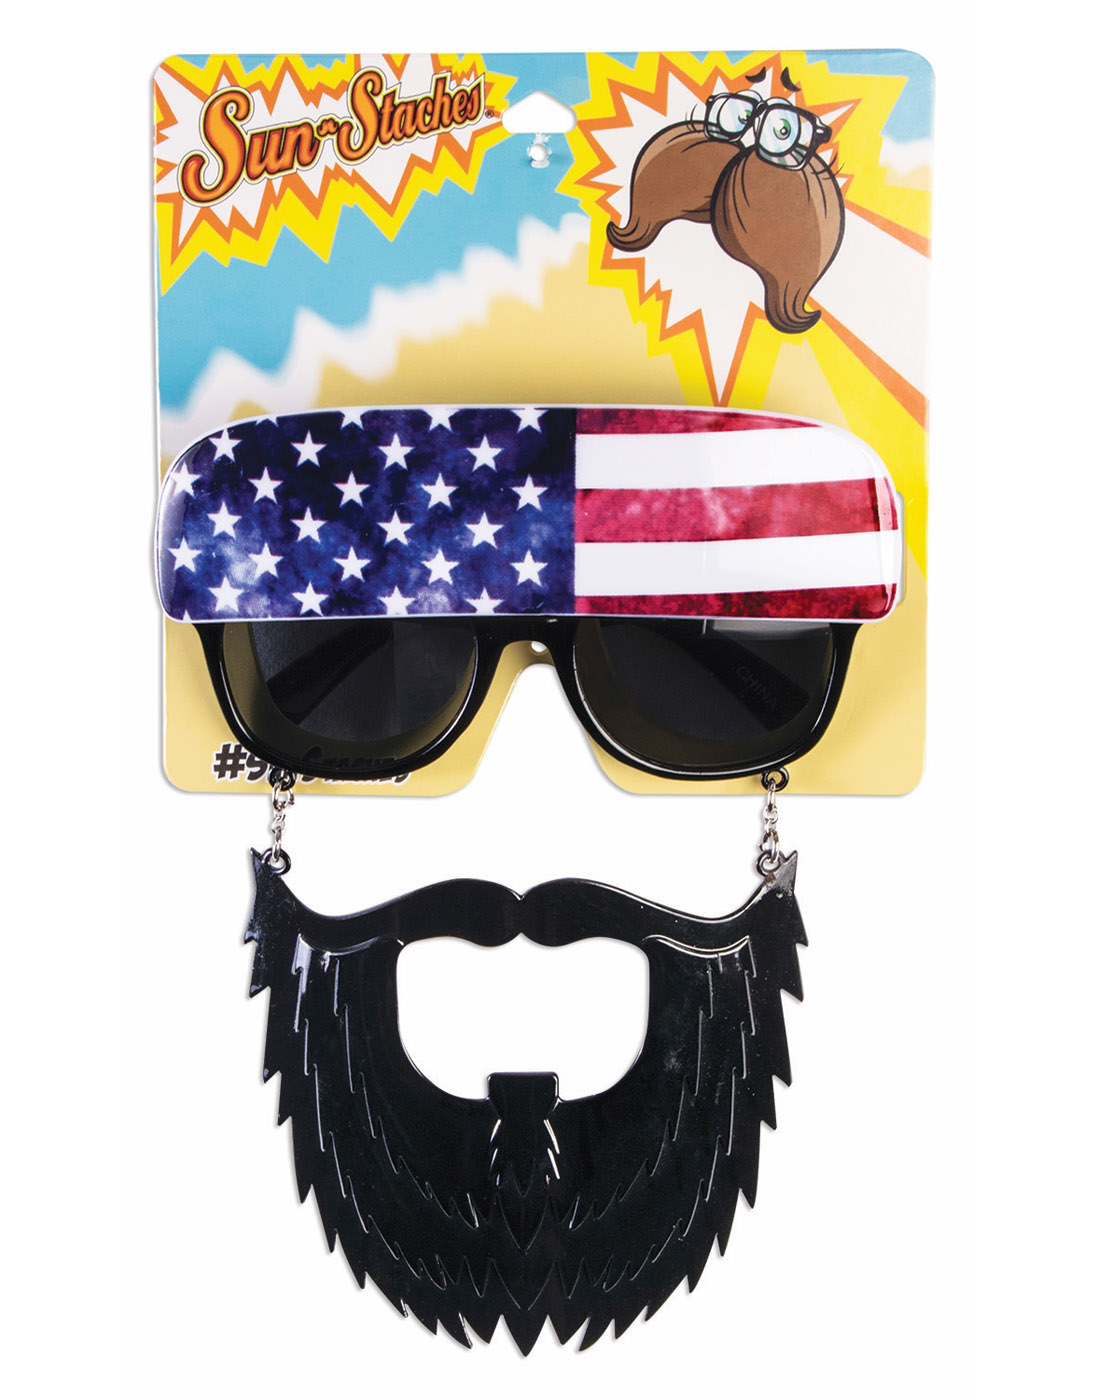 ae6e35f5d8aa American Trucker Boys Flag Sunglasses Sunstaches Accessory ...